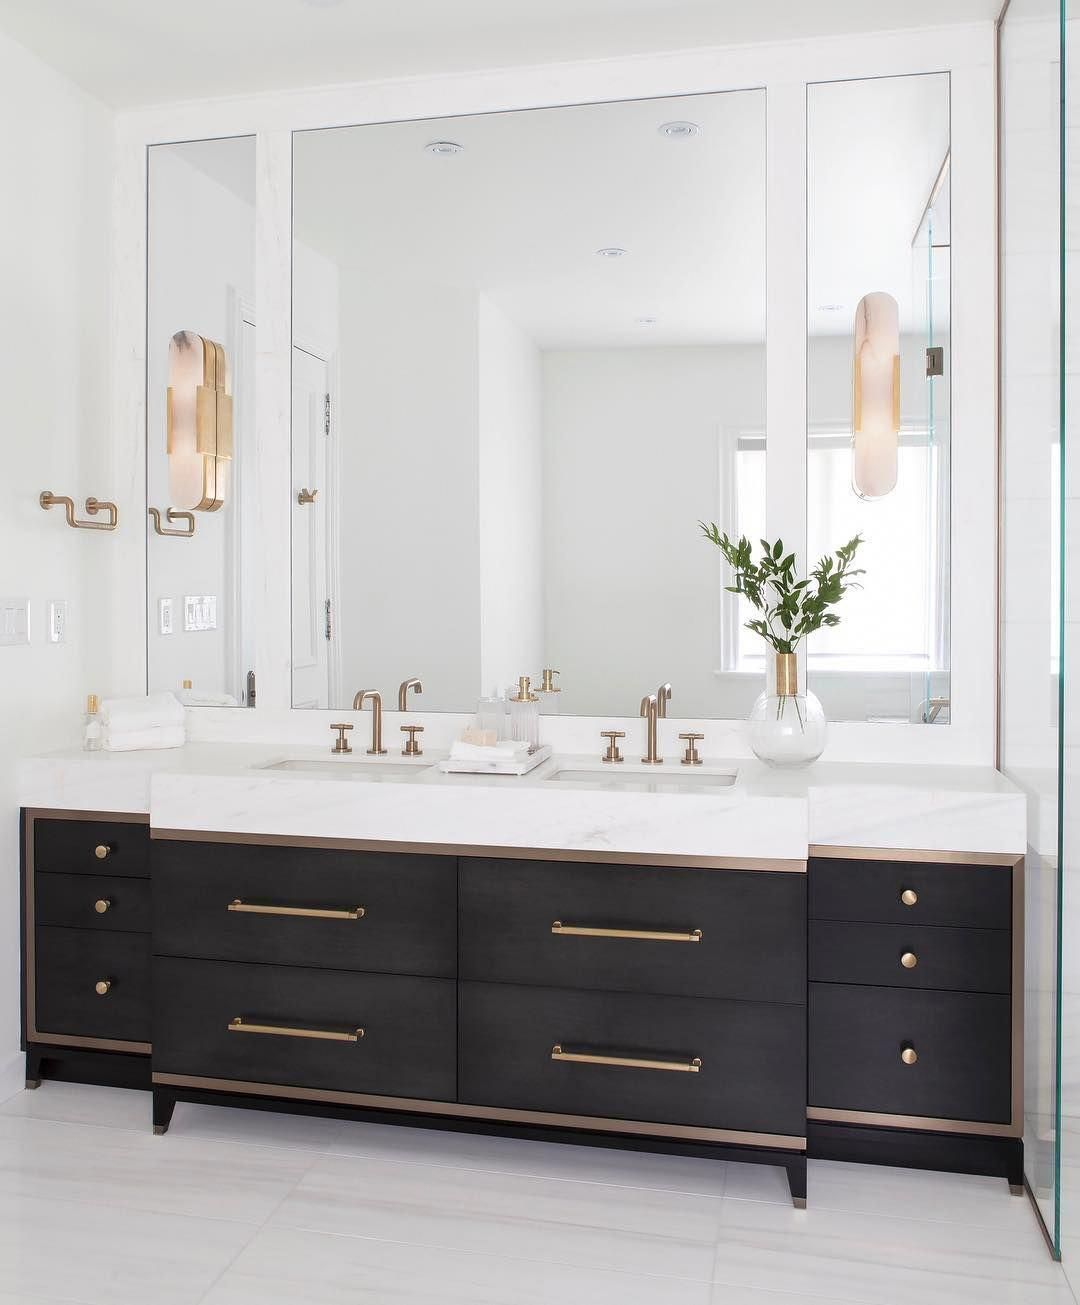 New Decor Trends For Your Bathroom Drawer Handles Bathroom